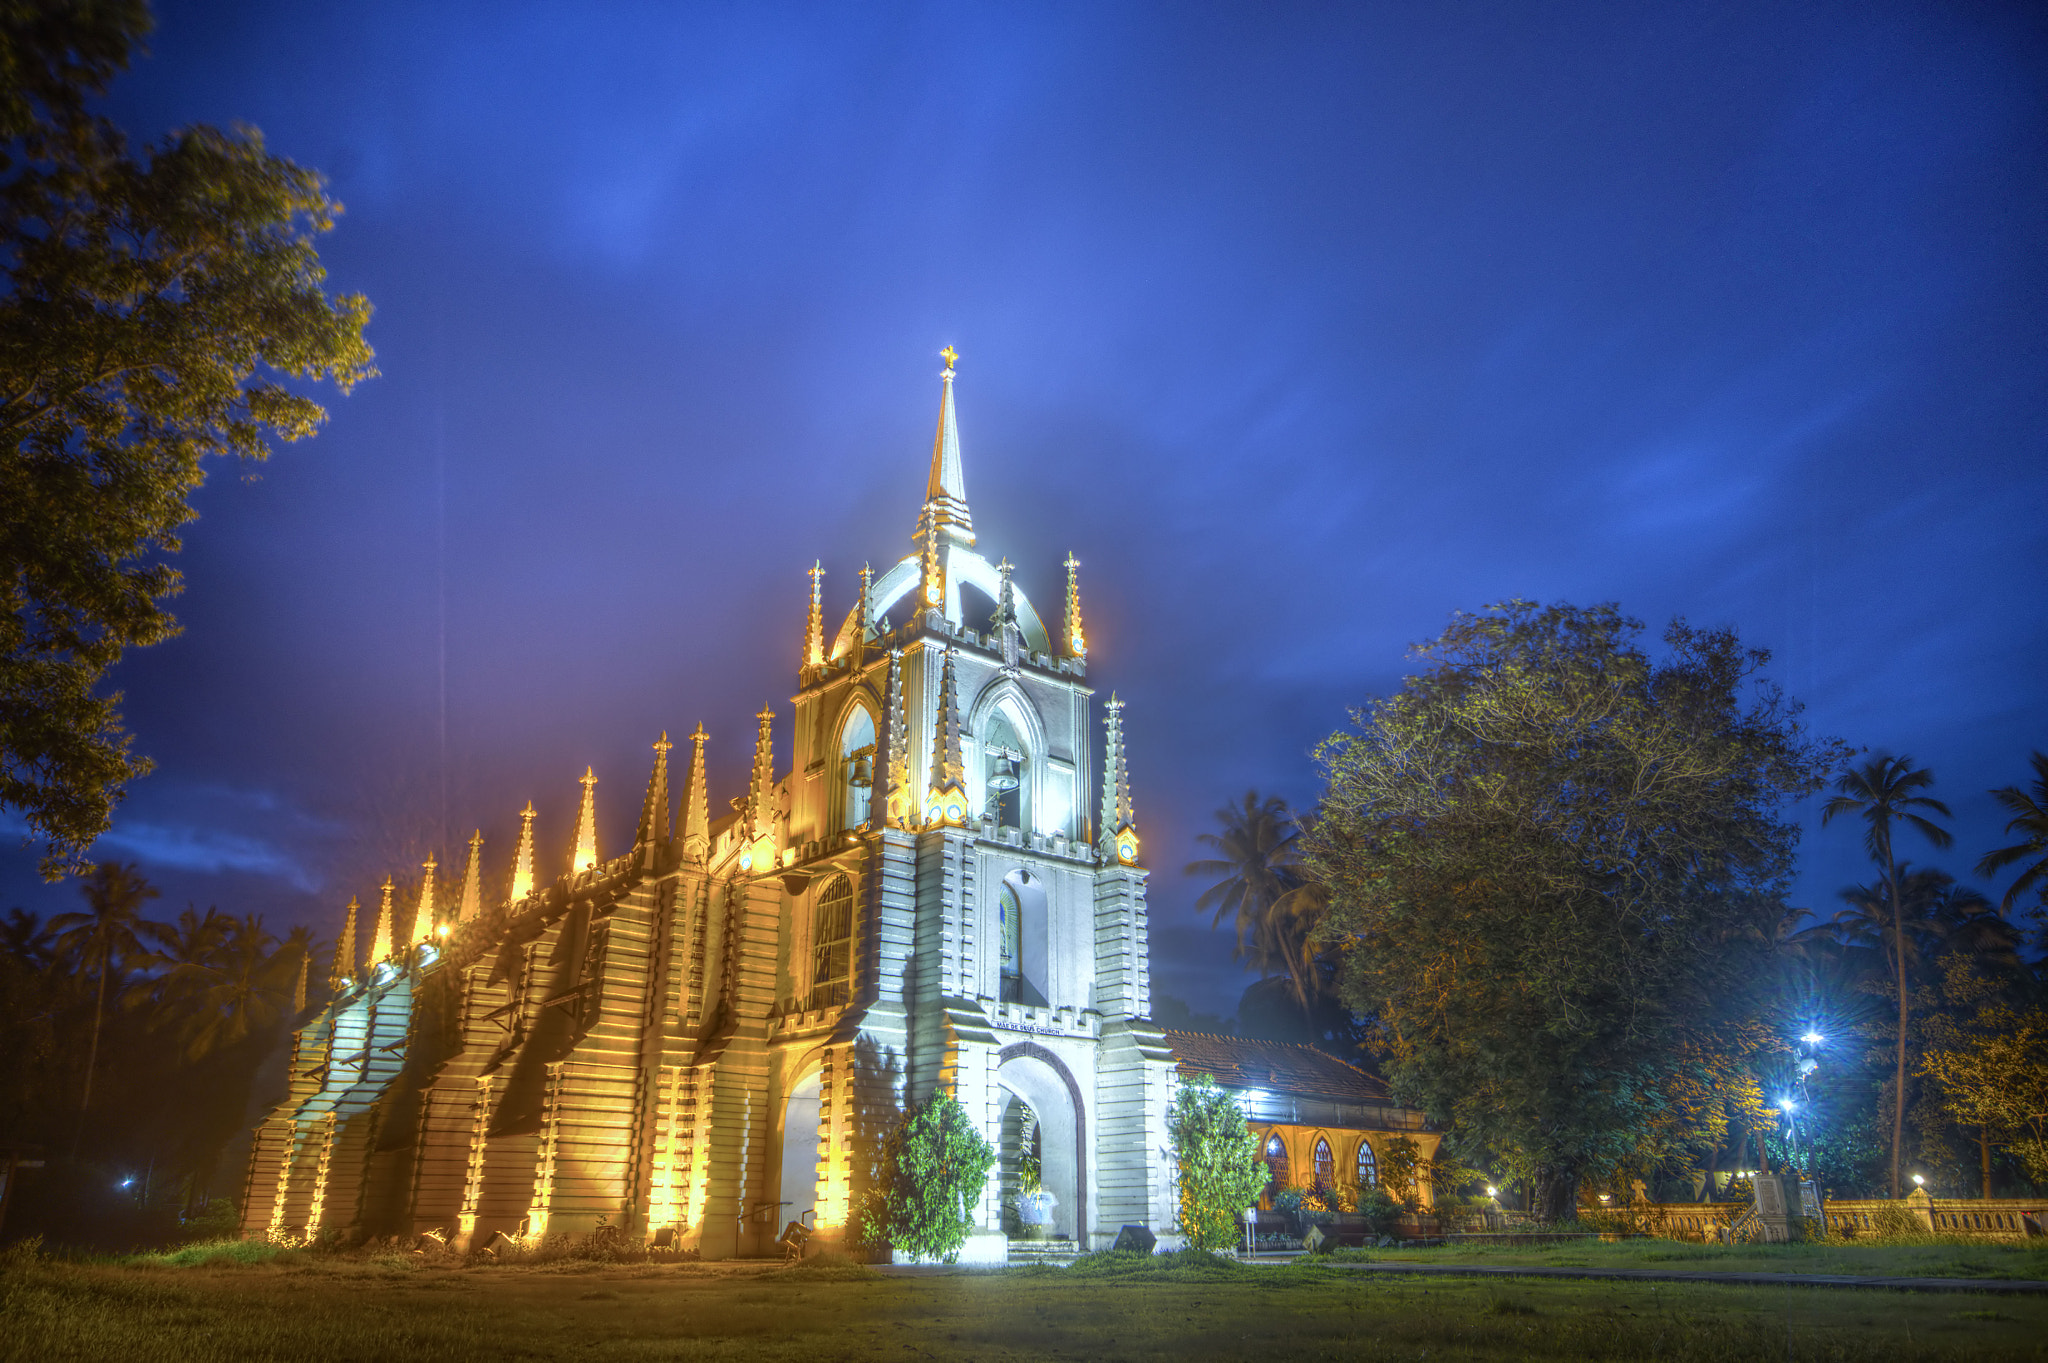 Photograph Saligao church HDR by Brendon Fernandes on 500px